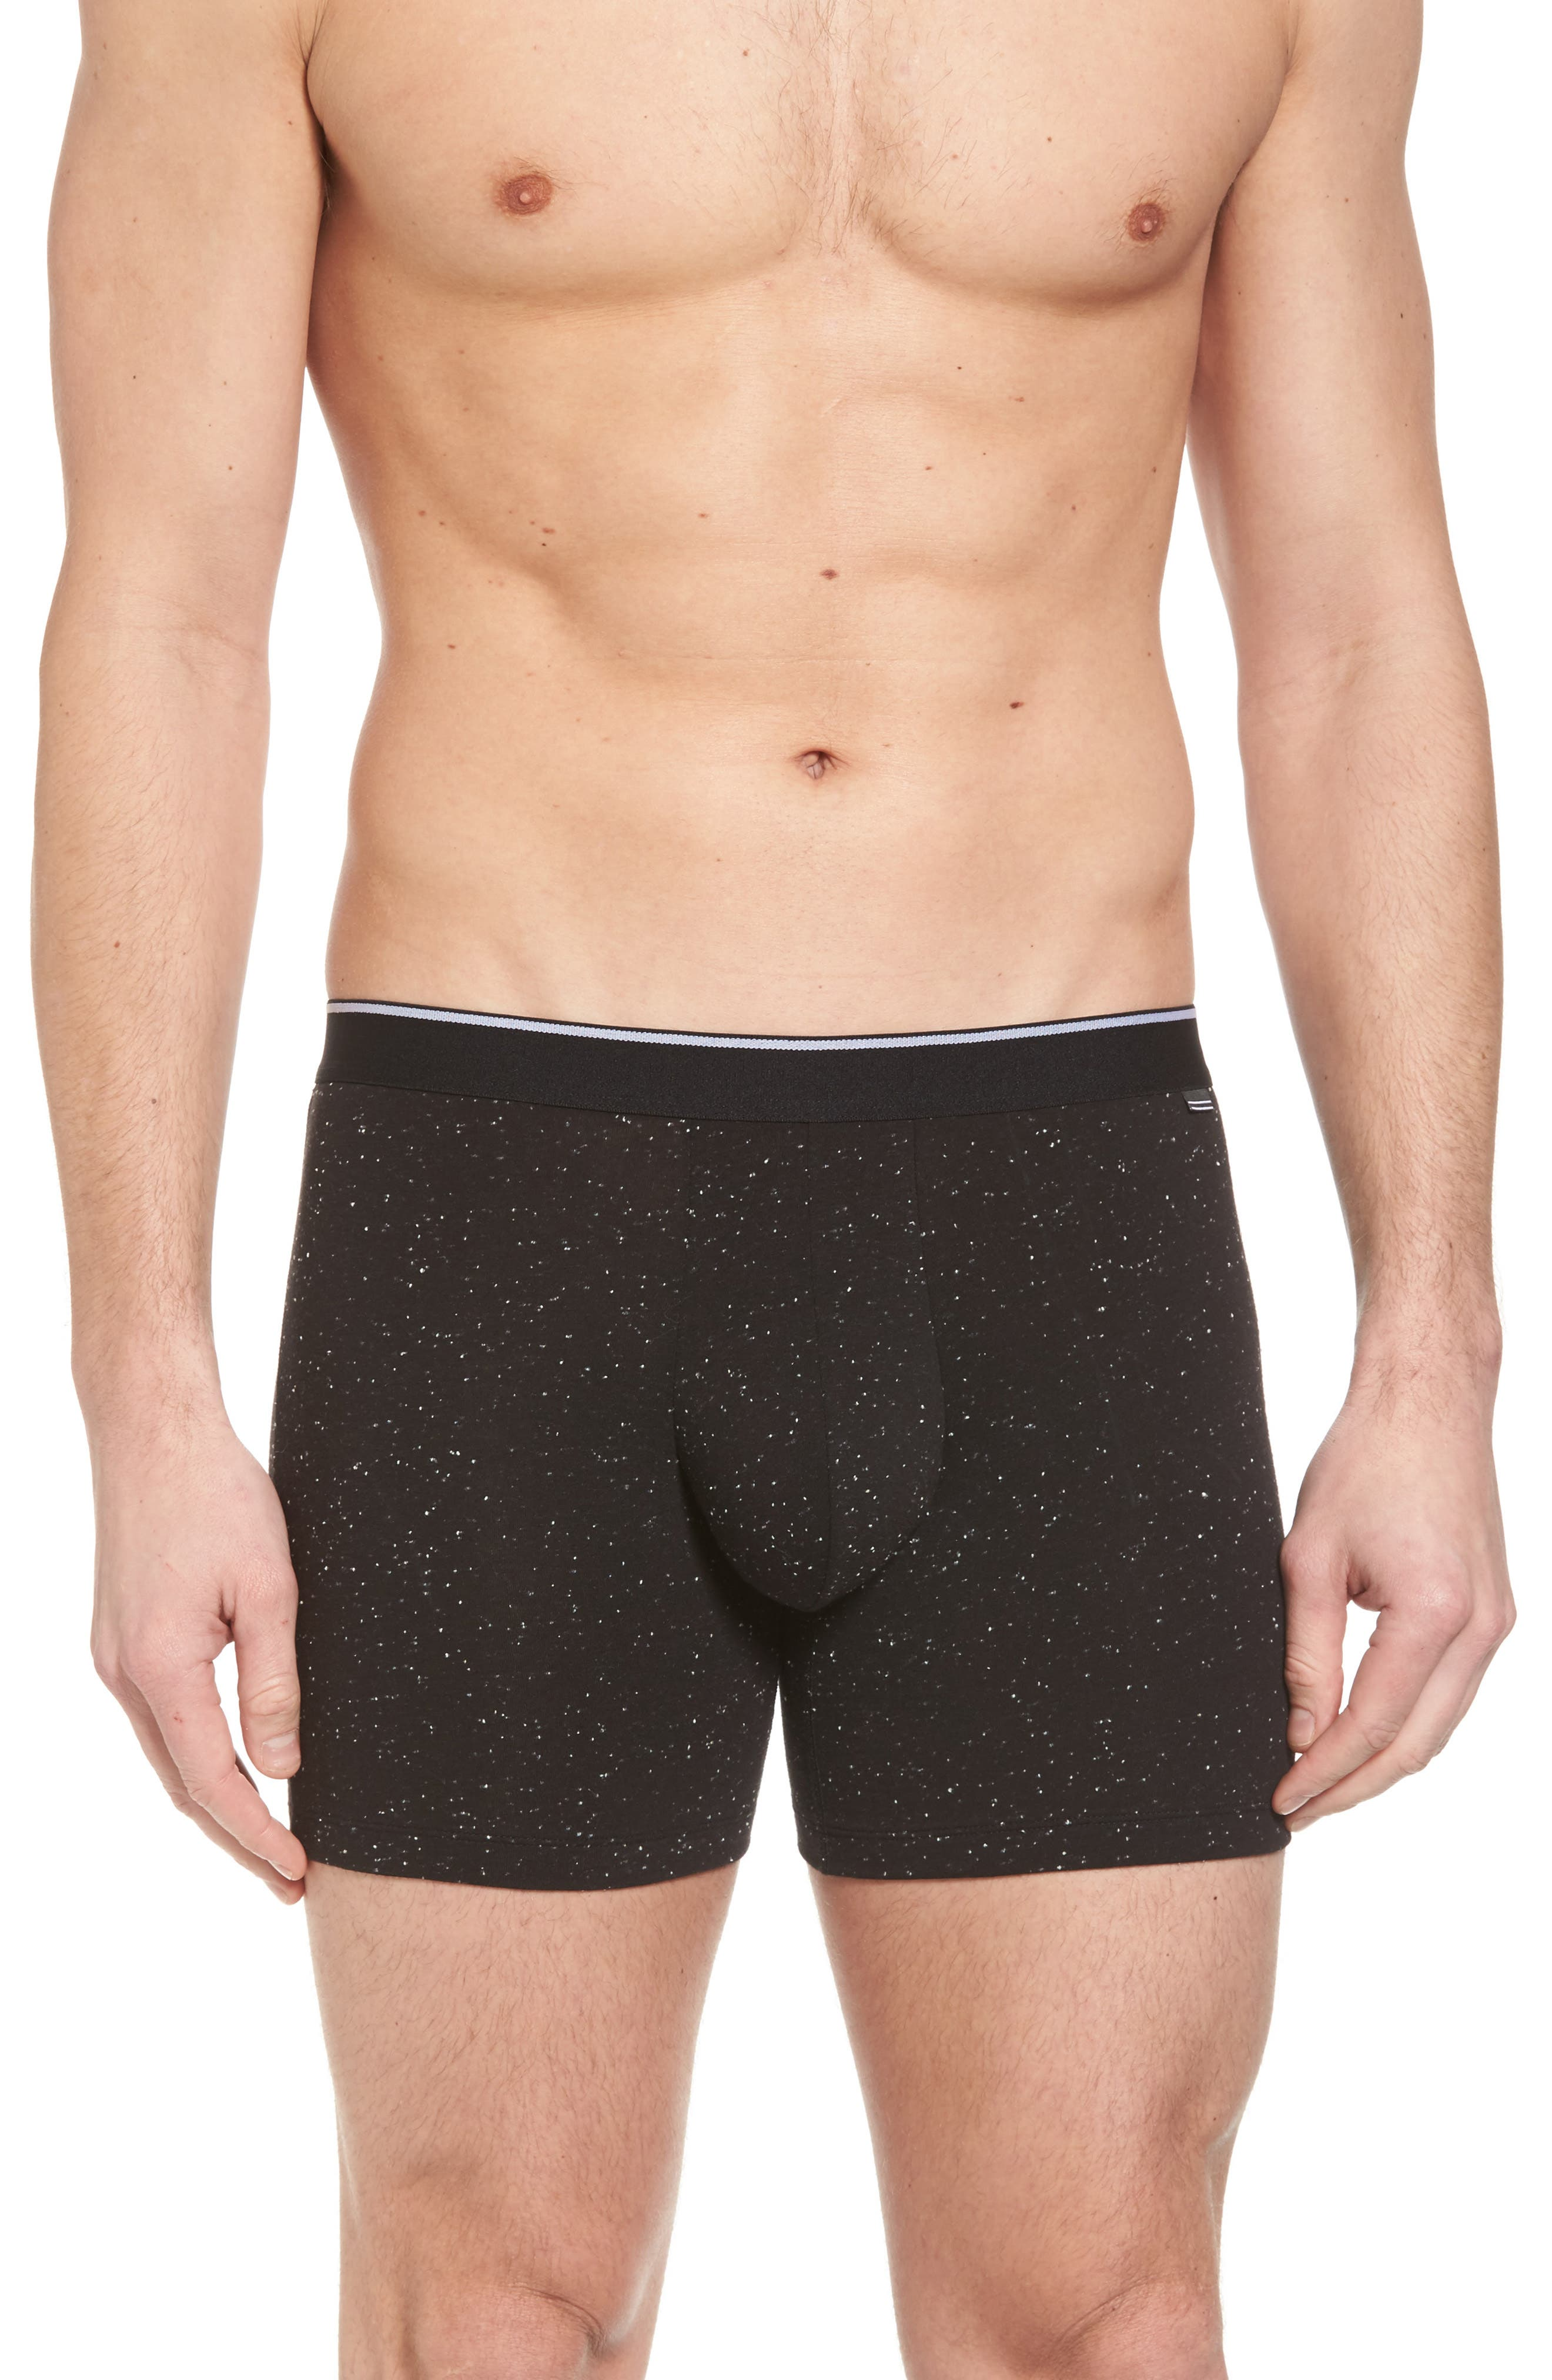 Nepped Boxer Briefs,                             Main thumbnail 1, color,                             Black- White Nepps